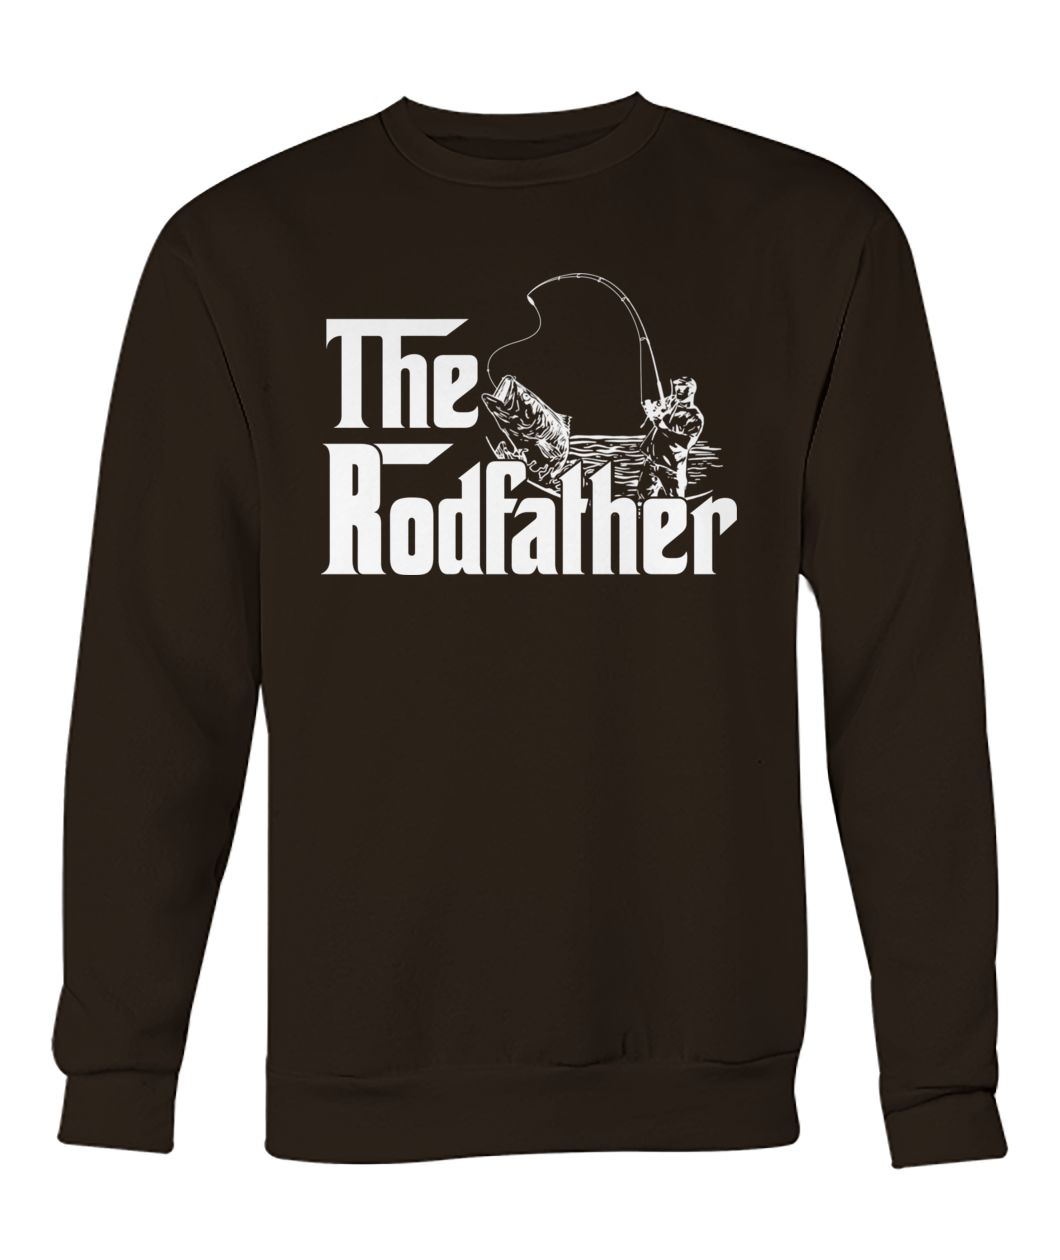 Boat fish rod the rodfather fishing crew neck sweatshirt